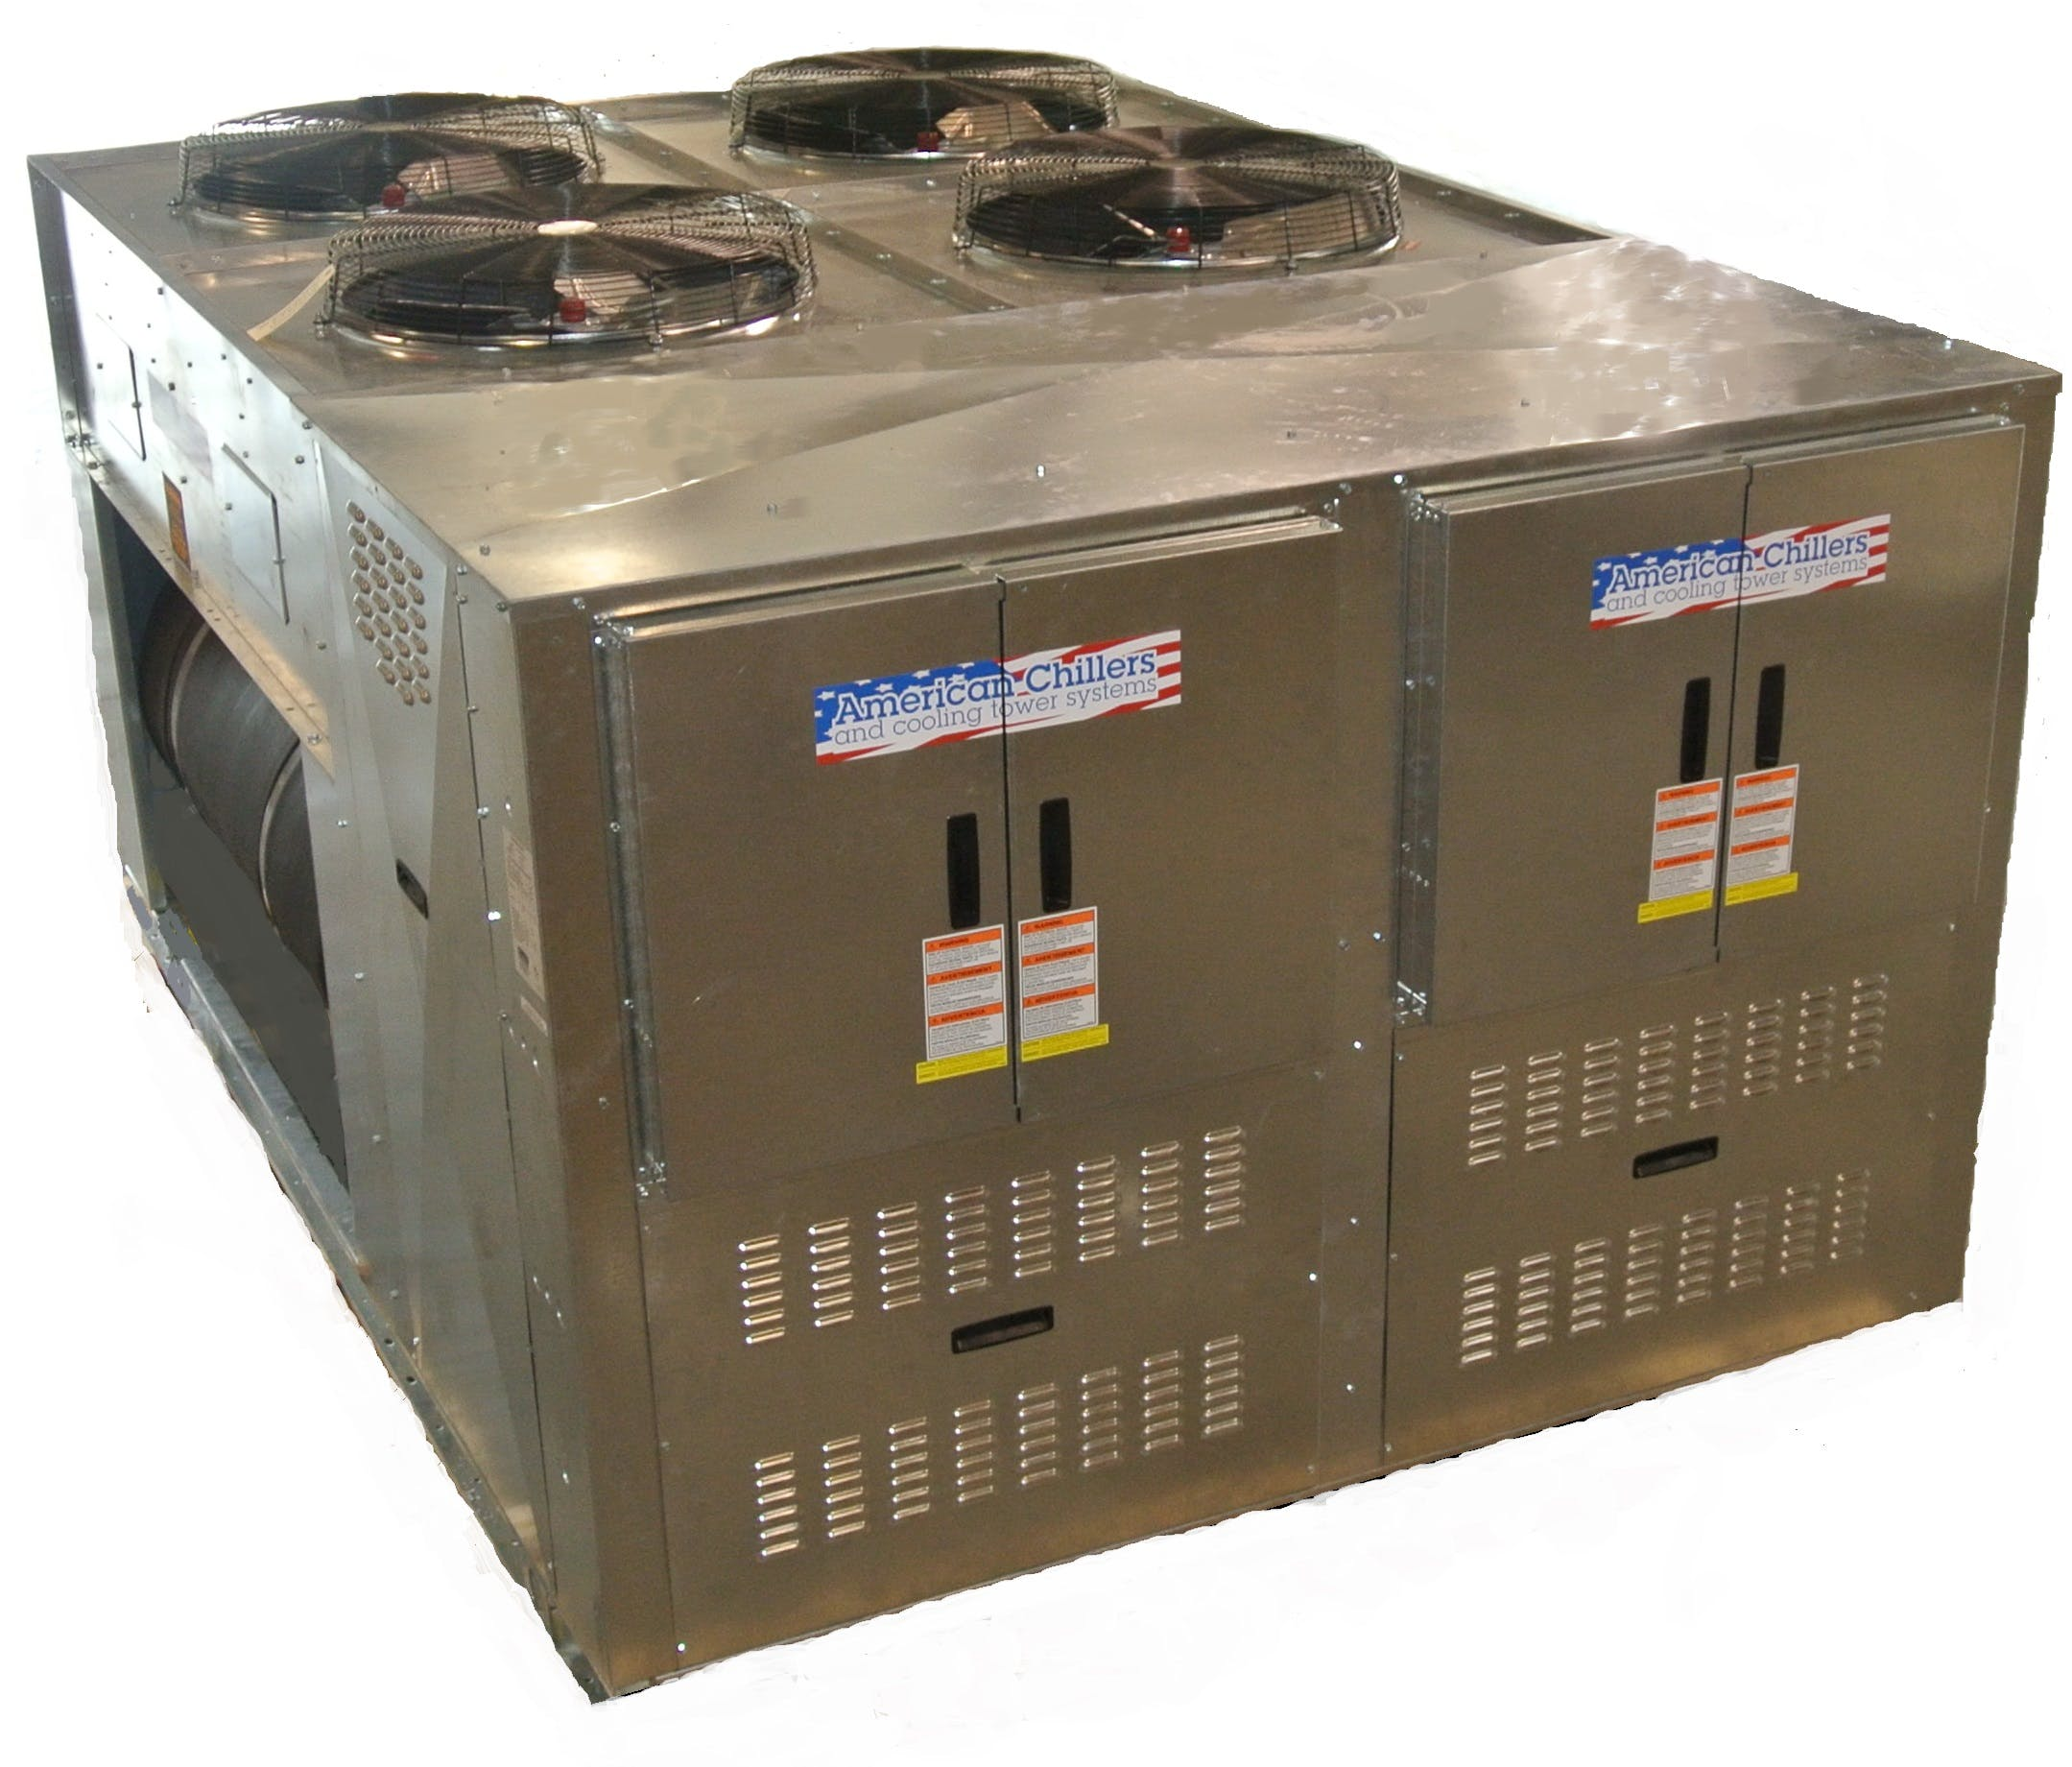 Large Glycol Chillers Glycol chiller sold by American Chillers and Cooling Tower Systems